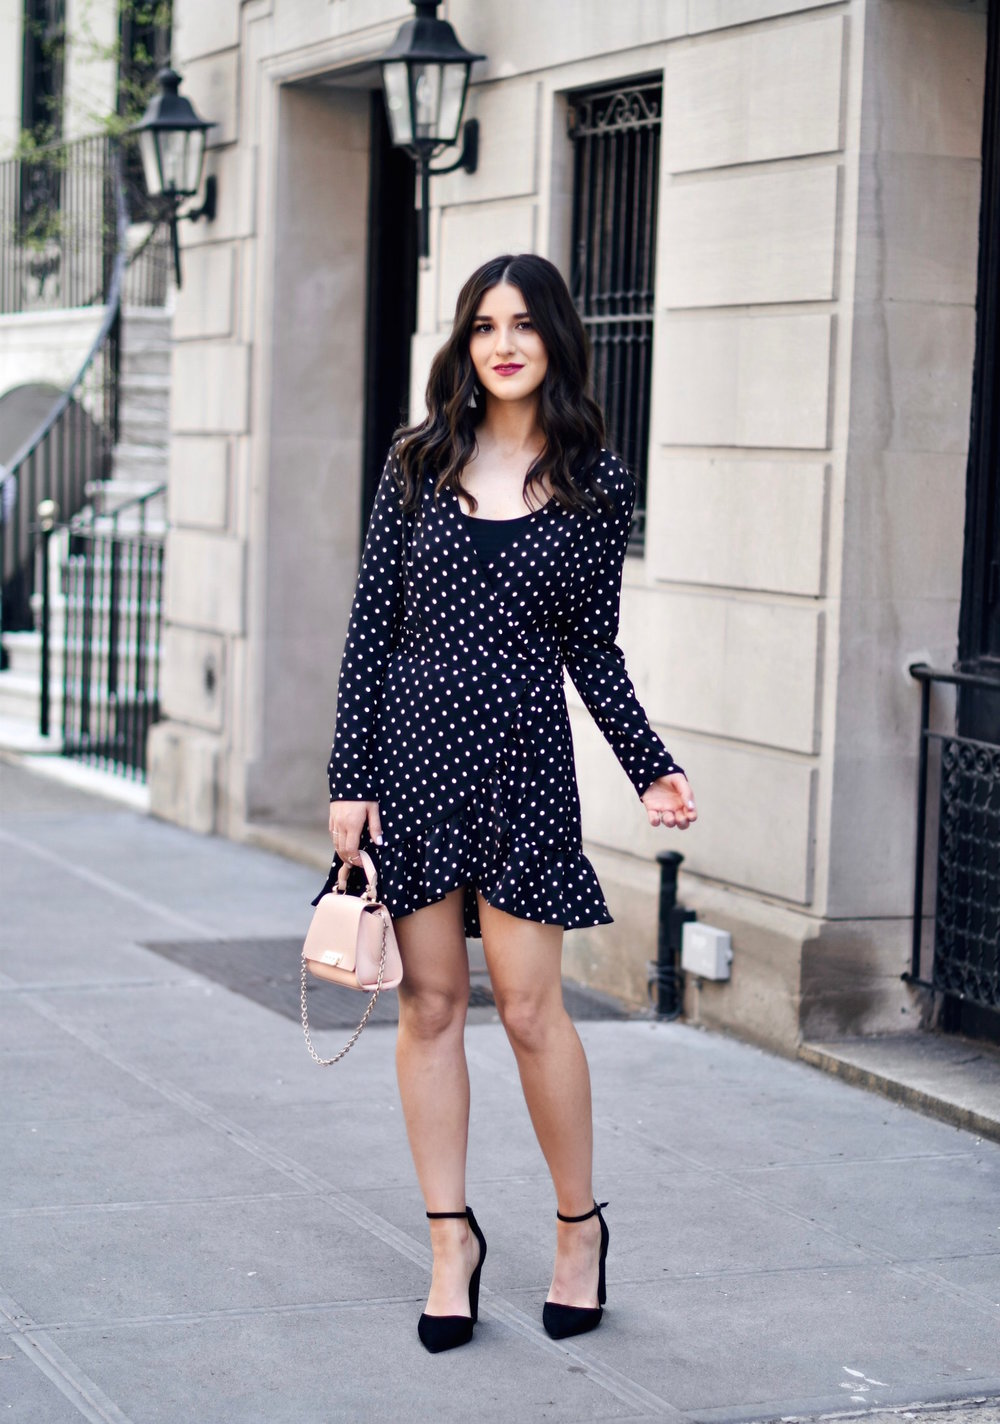 Polka Dot Wrap Dress Statement Earrings My 5 Blogging Rules While On My Honeymoon Esther Santer Fashion Blog NYC Street Style Blogger Outfit OOTD Trendy Kendra Scott ASOS Travel Content Married Husband Happy Summer Bag Beautiful Pointy Toe Ankle Strap.JPG